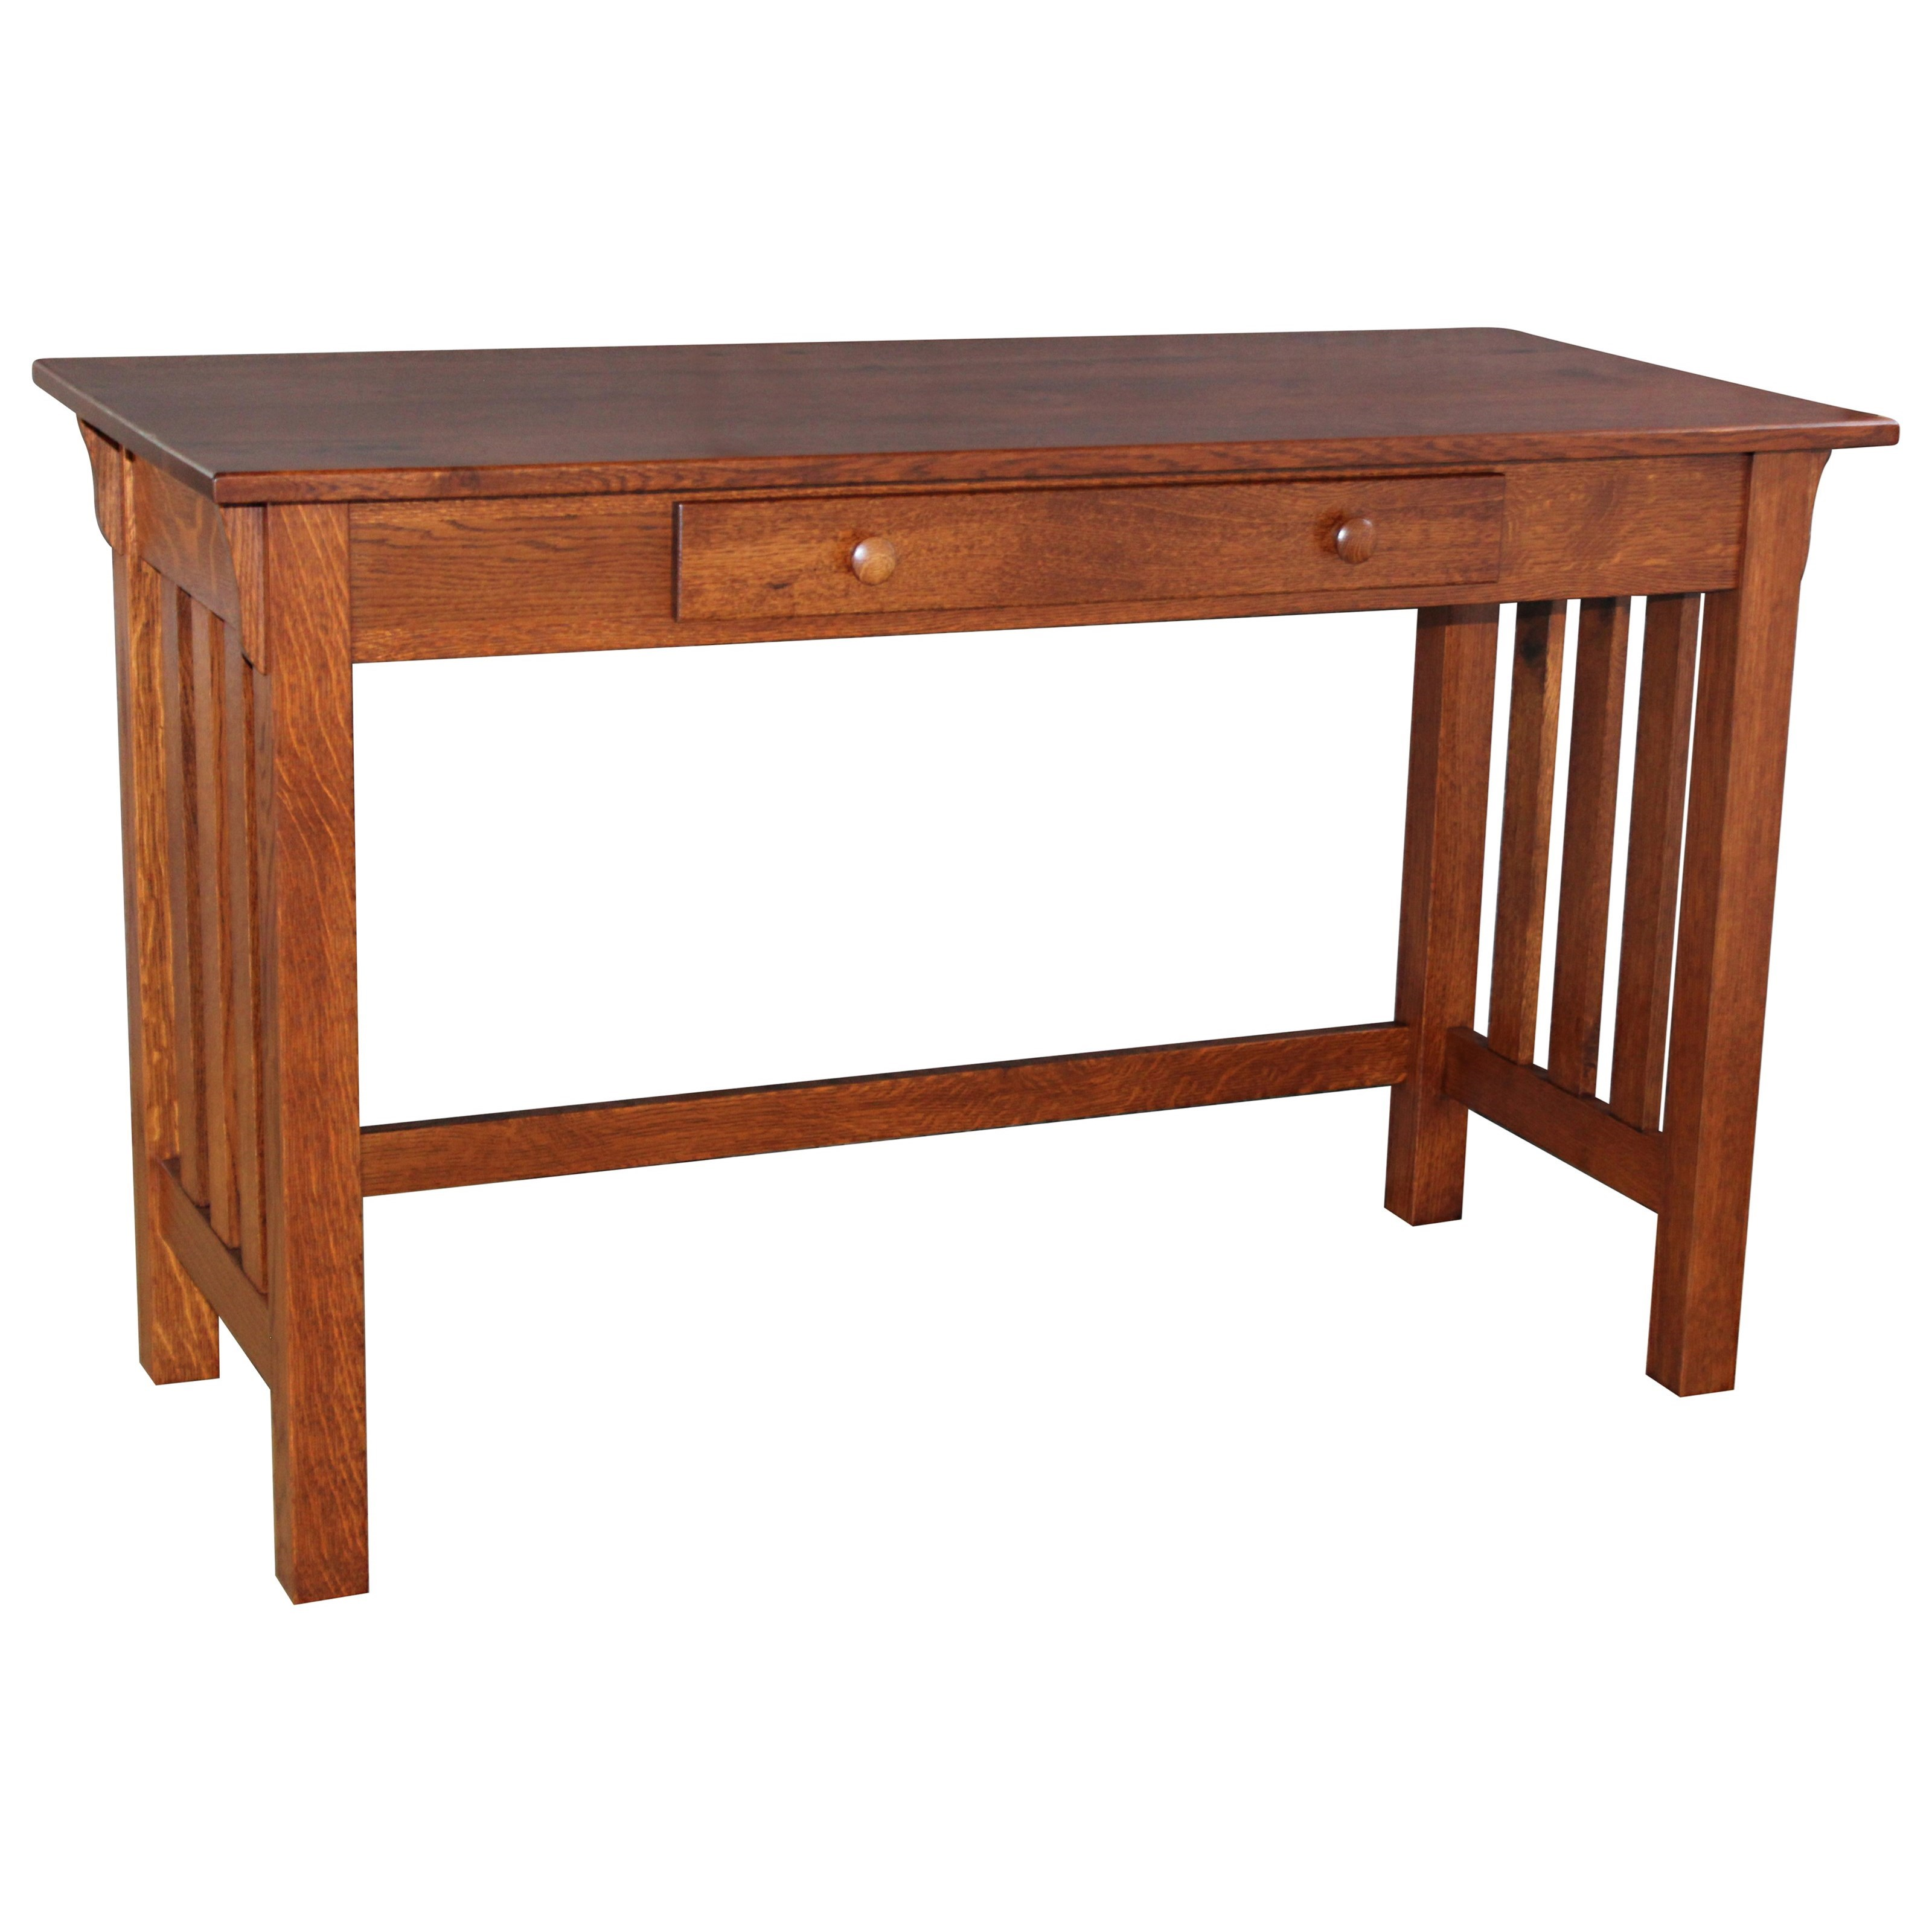 Wide Slat Mission Library Table by Ashery Woodworking at Saugerties Furniture Mart